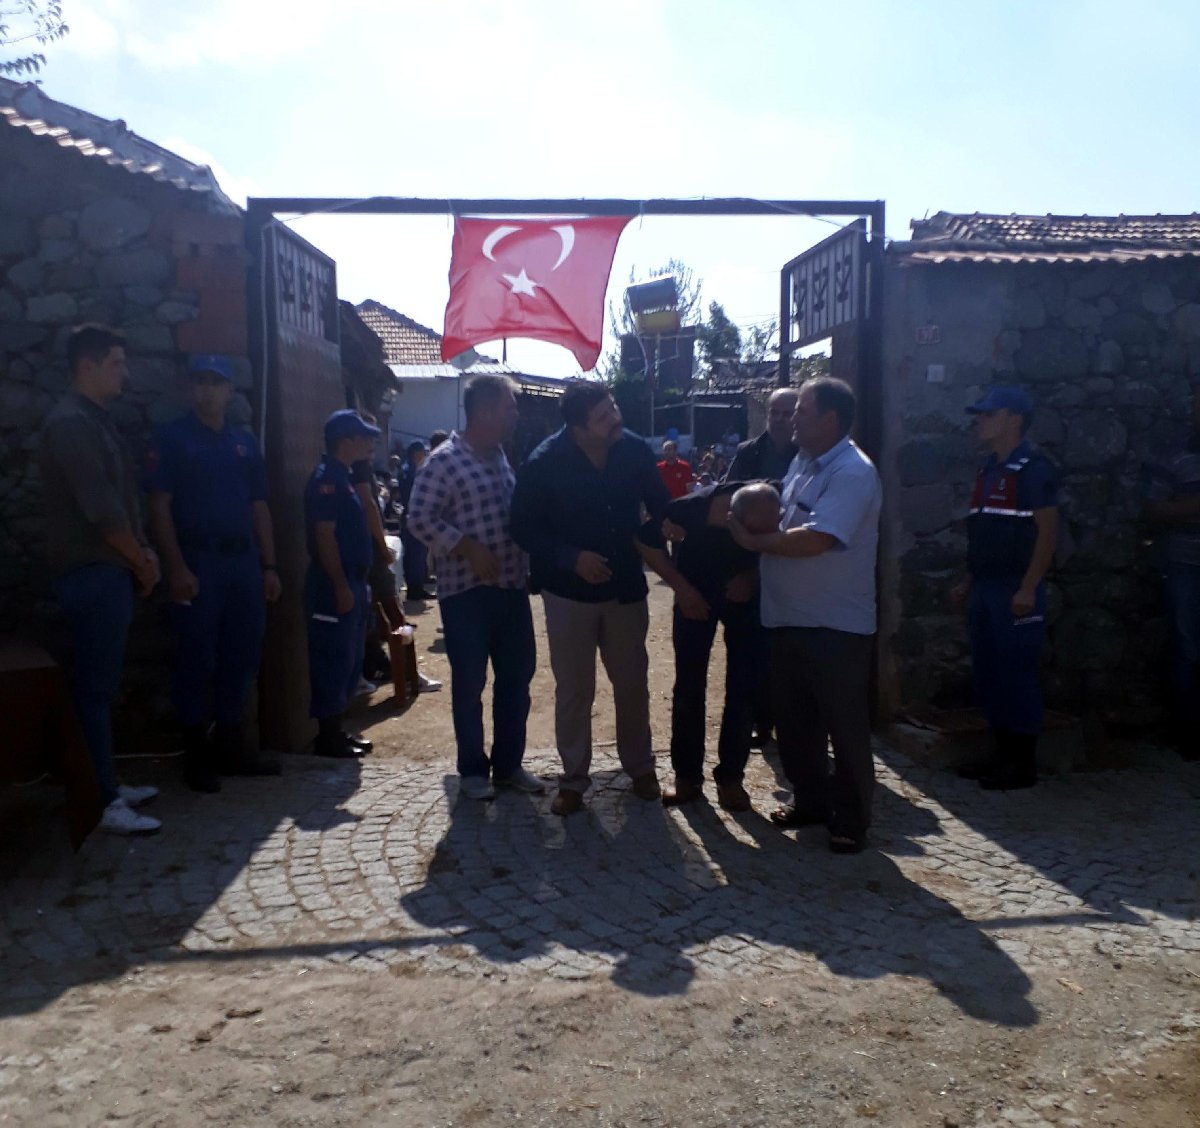 Yücel Ulus, the father of the martyr who had suffered the bitter news, fenalaştı. The ambulance medical teams intervened.